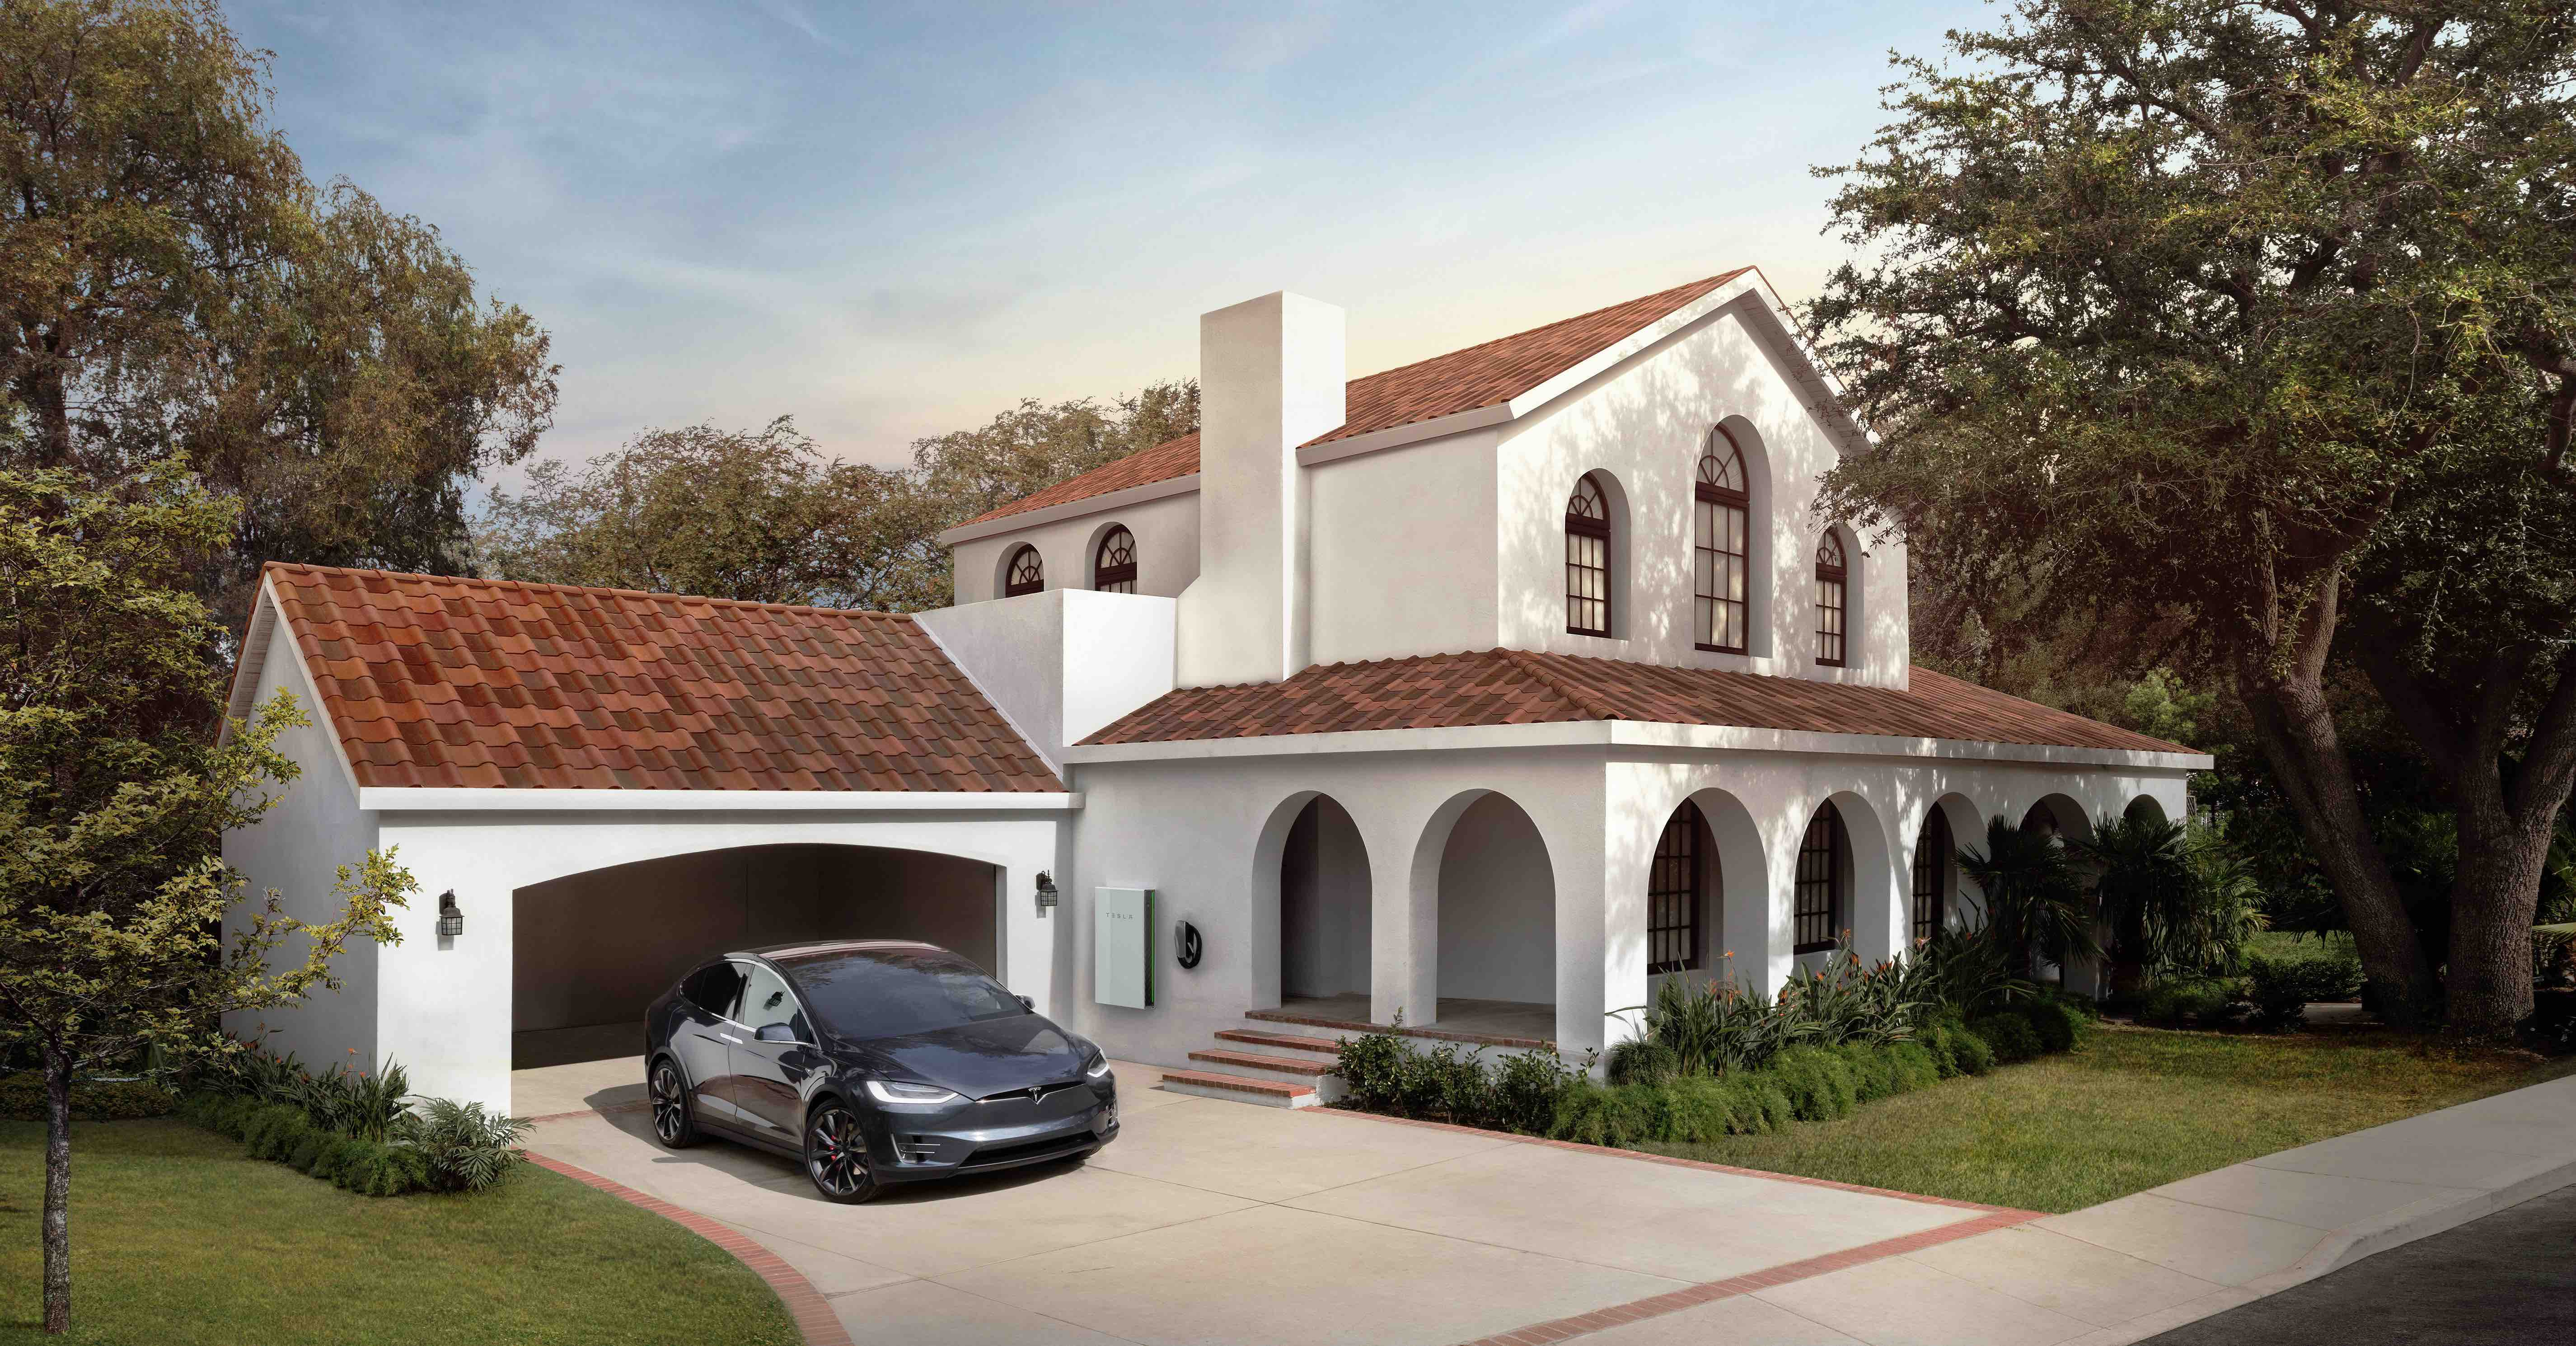 Tesla Solar Roof Order >> Tesla S New Solar Roof Everything You Need To Know And How To Get It